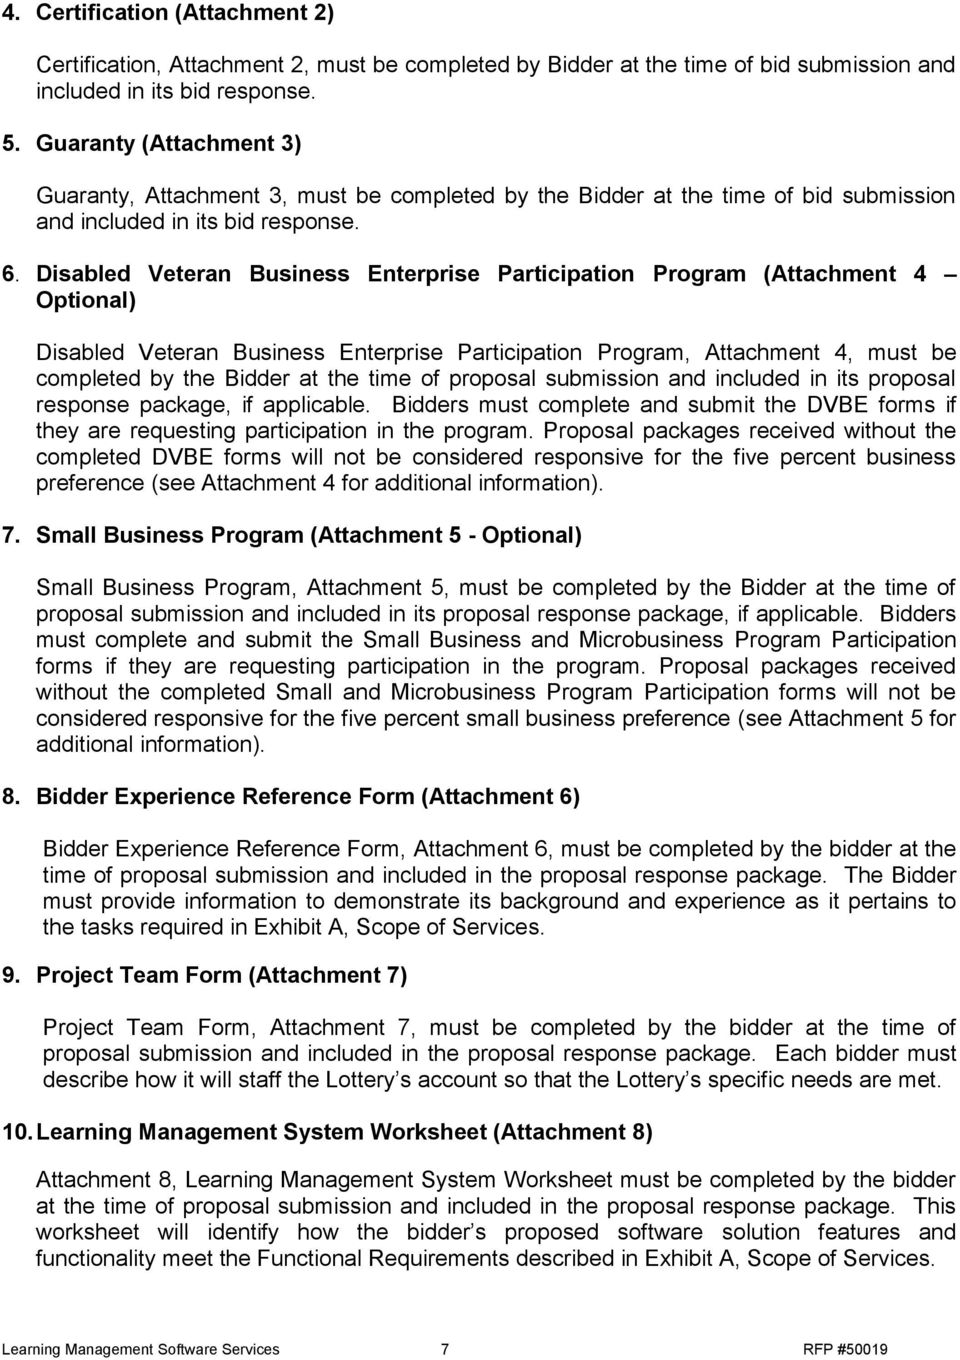 Disabled Veteran Business Enterprise Participation Program (Attachment 4 Optional) Disabled Veteran Business Enterprise Participation Program, Attachment 4, must be completed by the Bidder at the